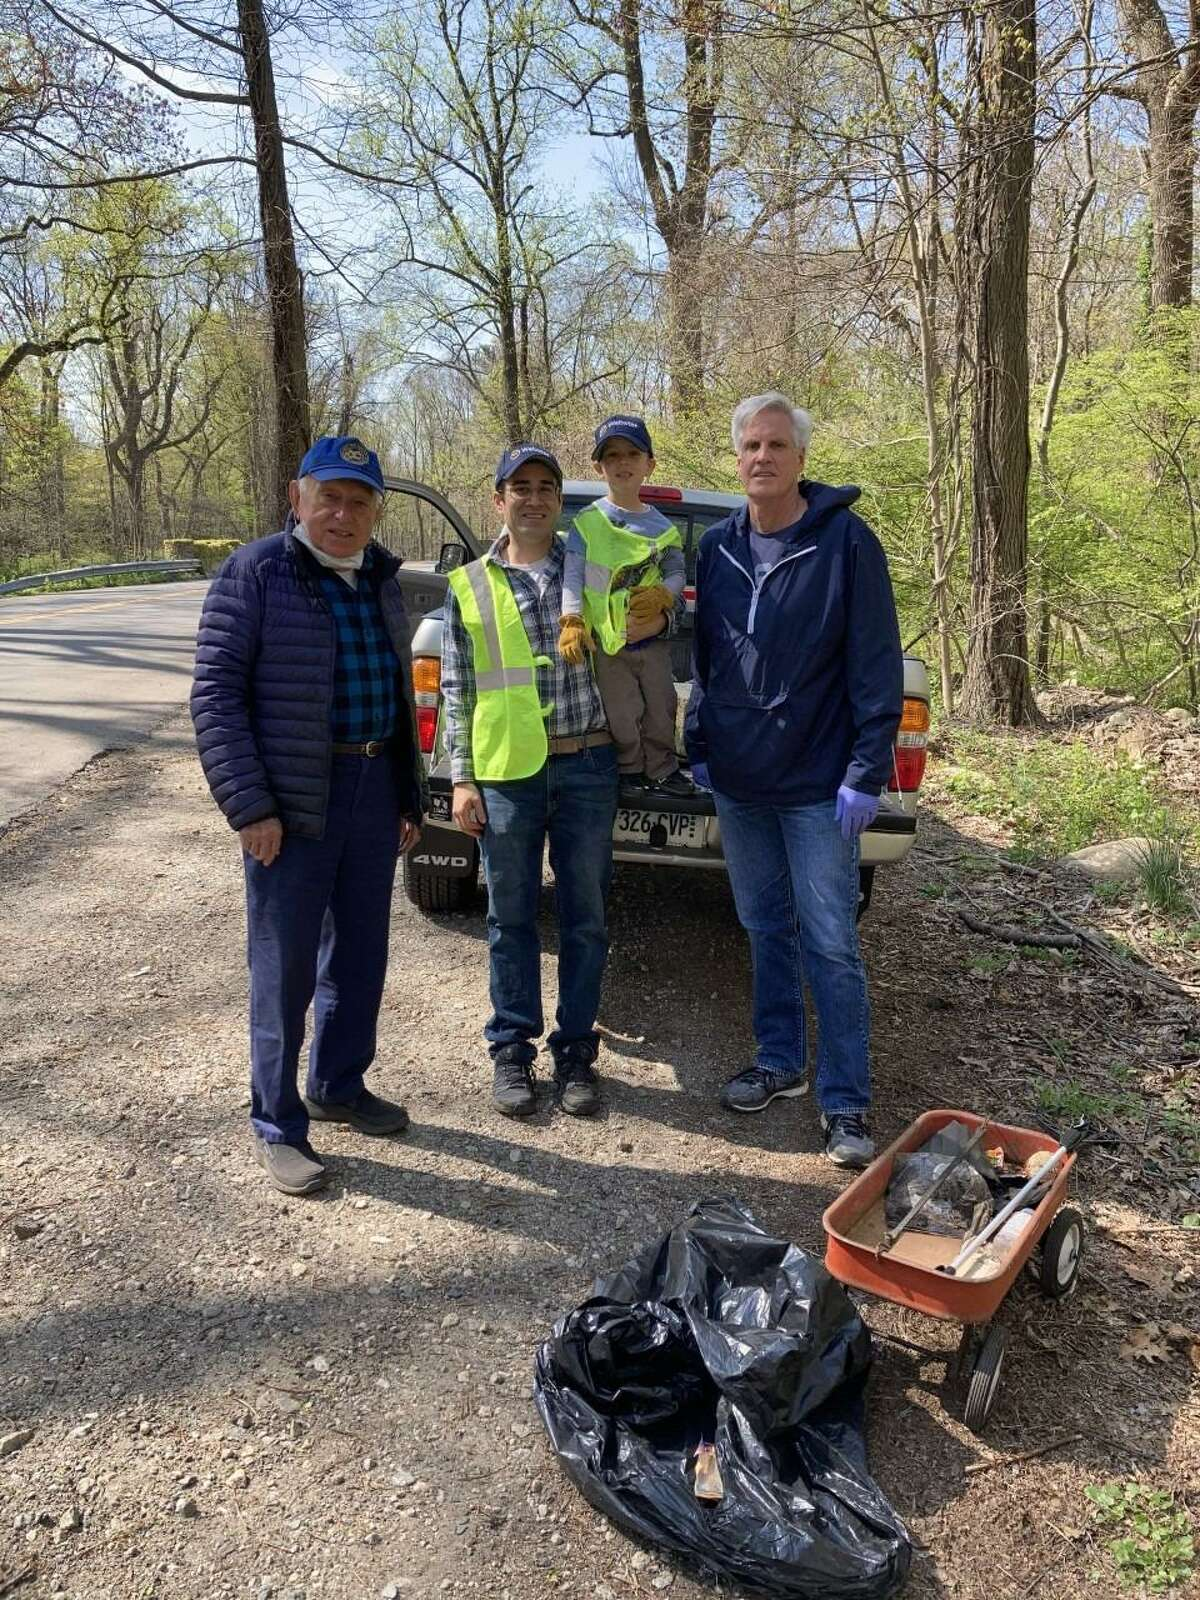 Members of the New Canaan Exchange Club and families worked to pick up and dispose of trash on Lapham Road on the west side of Waveny Park this past Saturday, April 24. A pickup truck full of refuse was removed from the roadside. Exchange Club members in this photo are: Gene Milosh, Luke Tashjian and son, and Tom Dunston. Luke Tashjian organized this year's, 2021, effort, and provided coffee and donuts for the team.